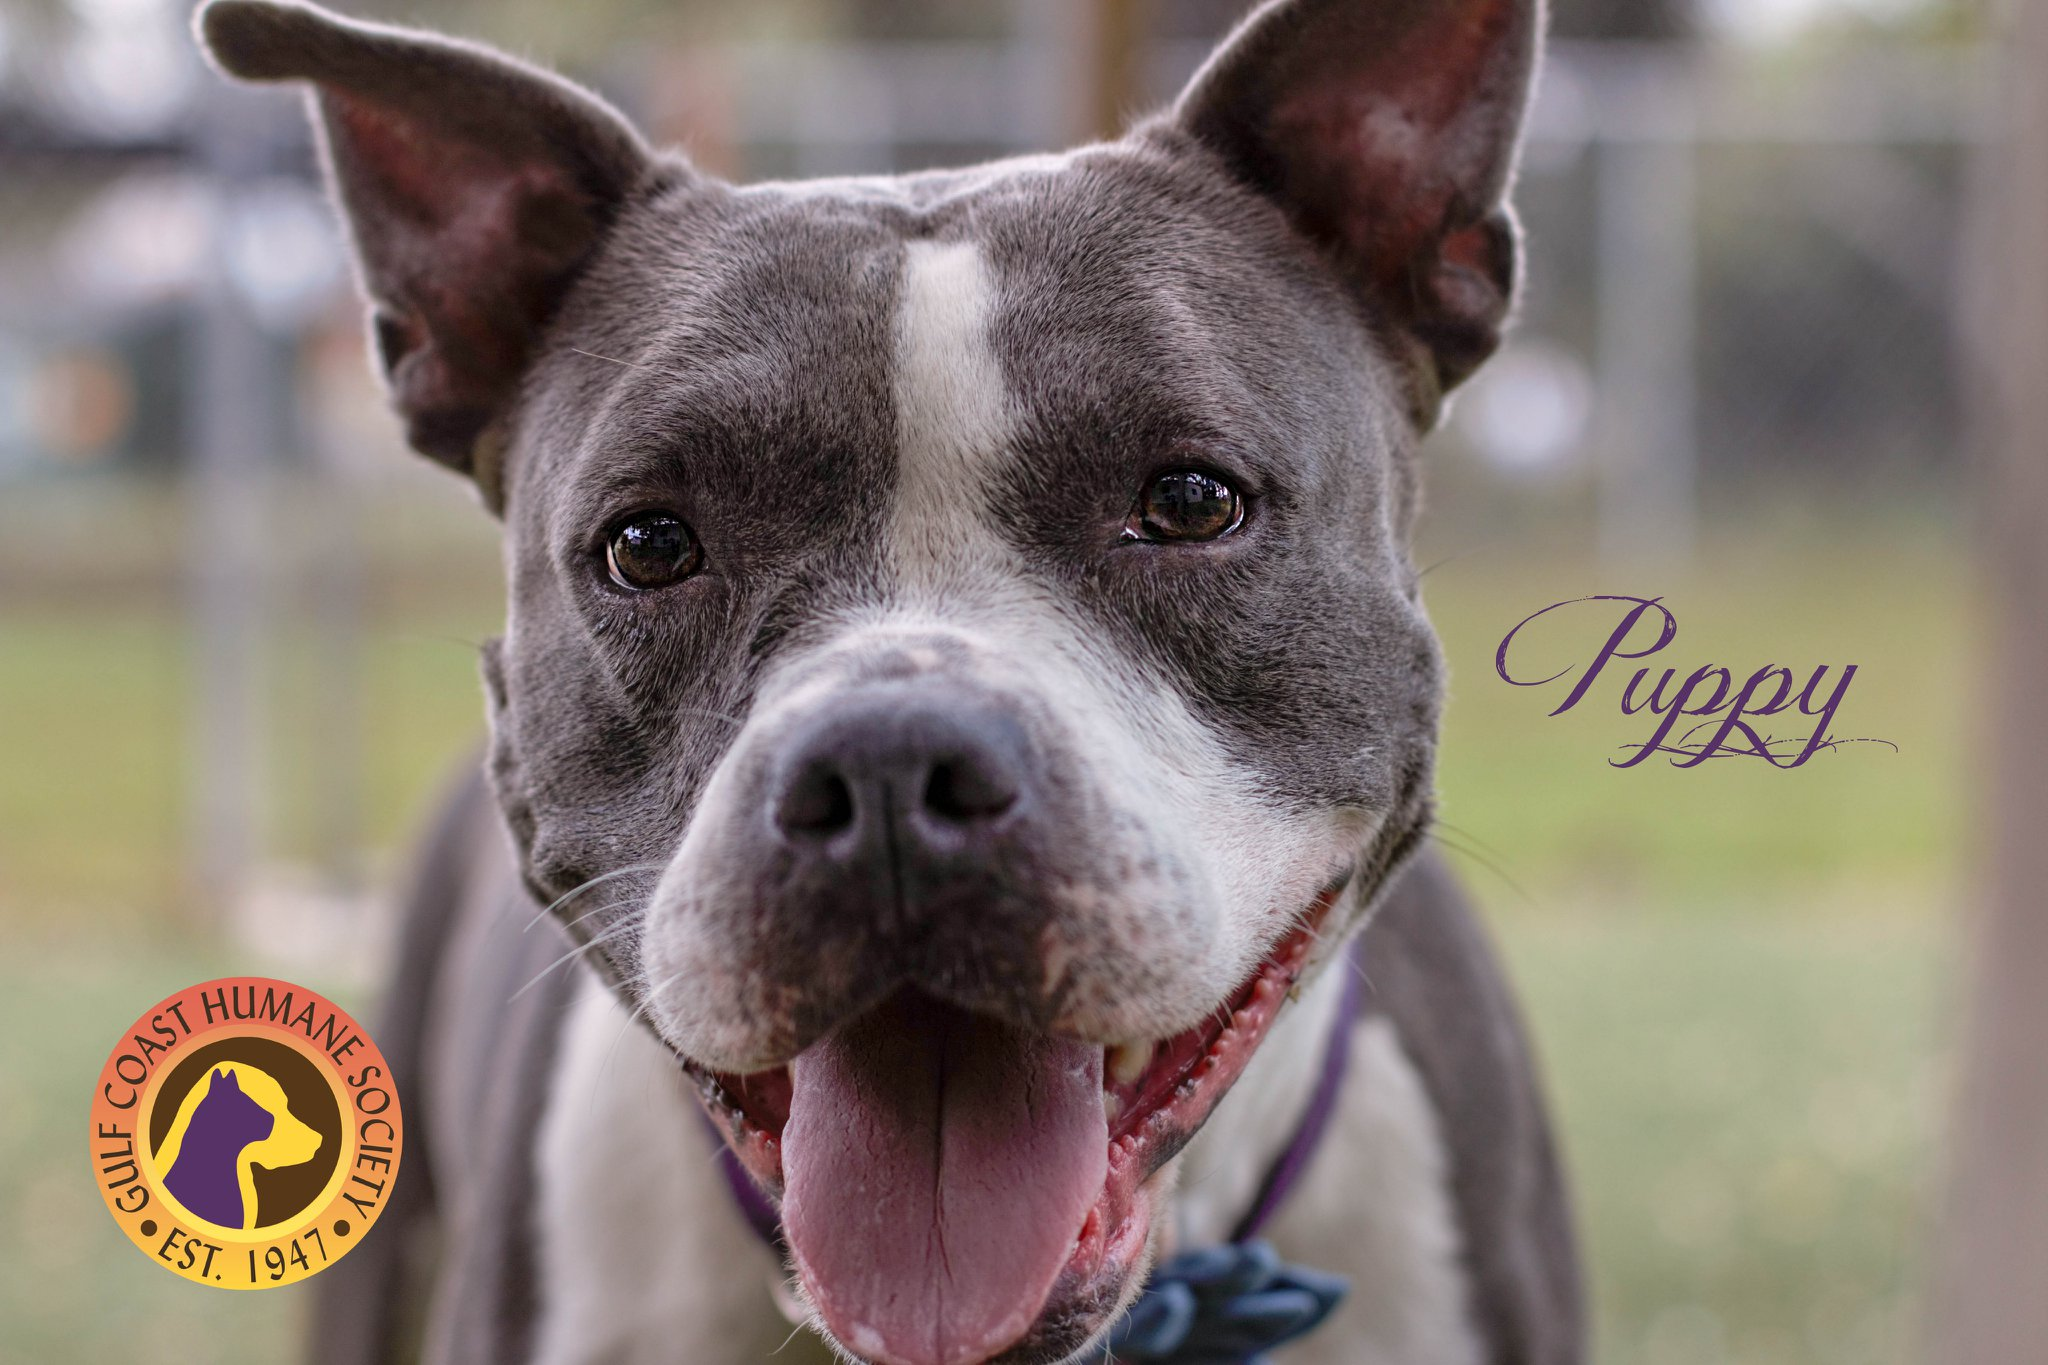 Puppy is available for adoption!